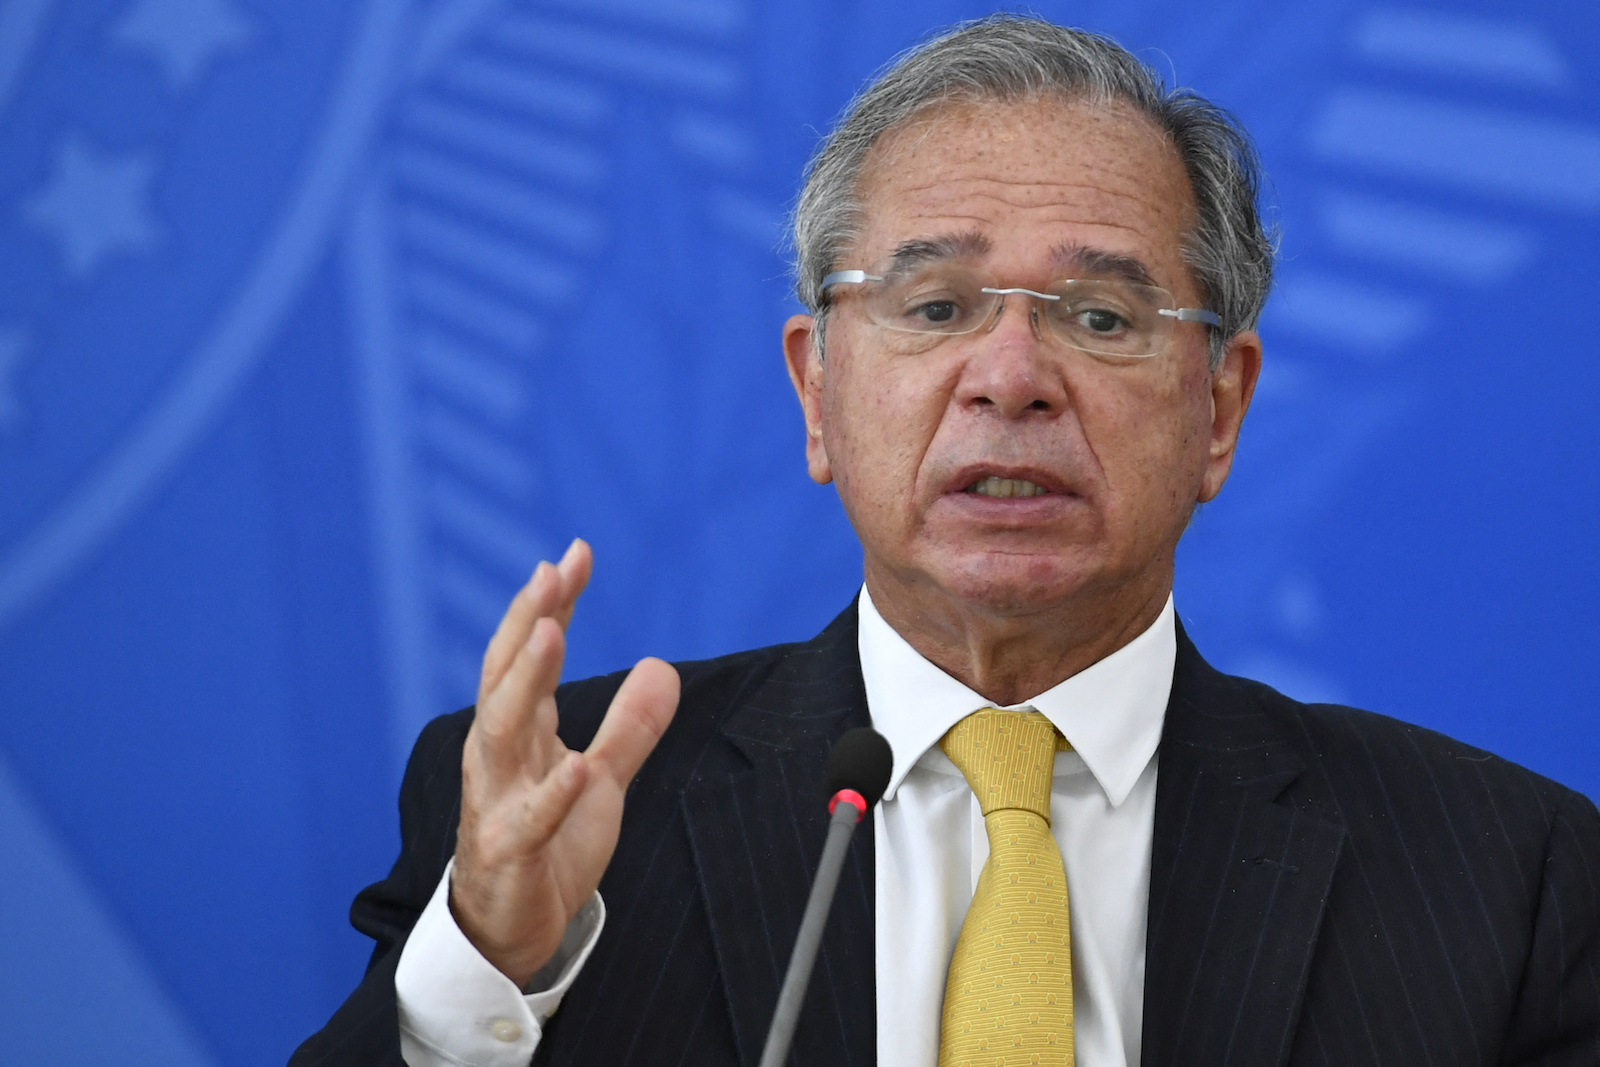 Minister of Economy Paulo Guedes, pictured on February 5, during a press conference to discuss energy policies. Photo: AFP/Mateus Bonomi/AGIF